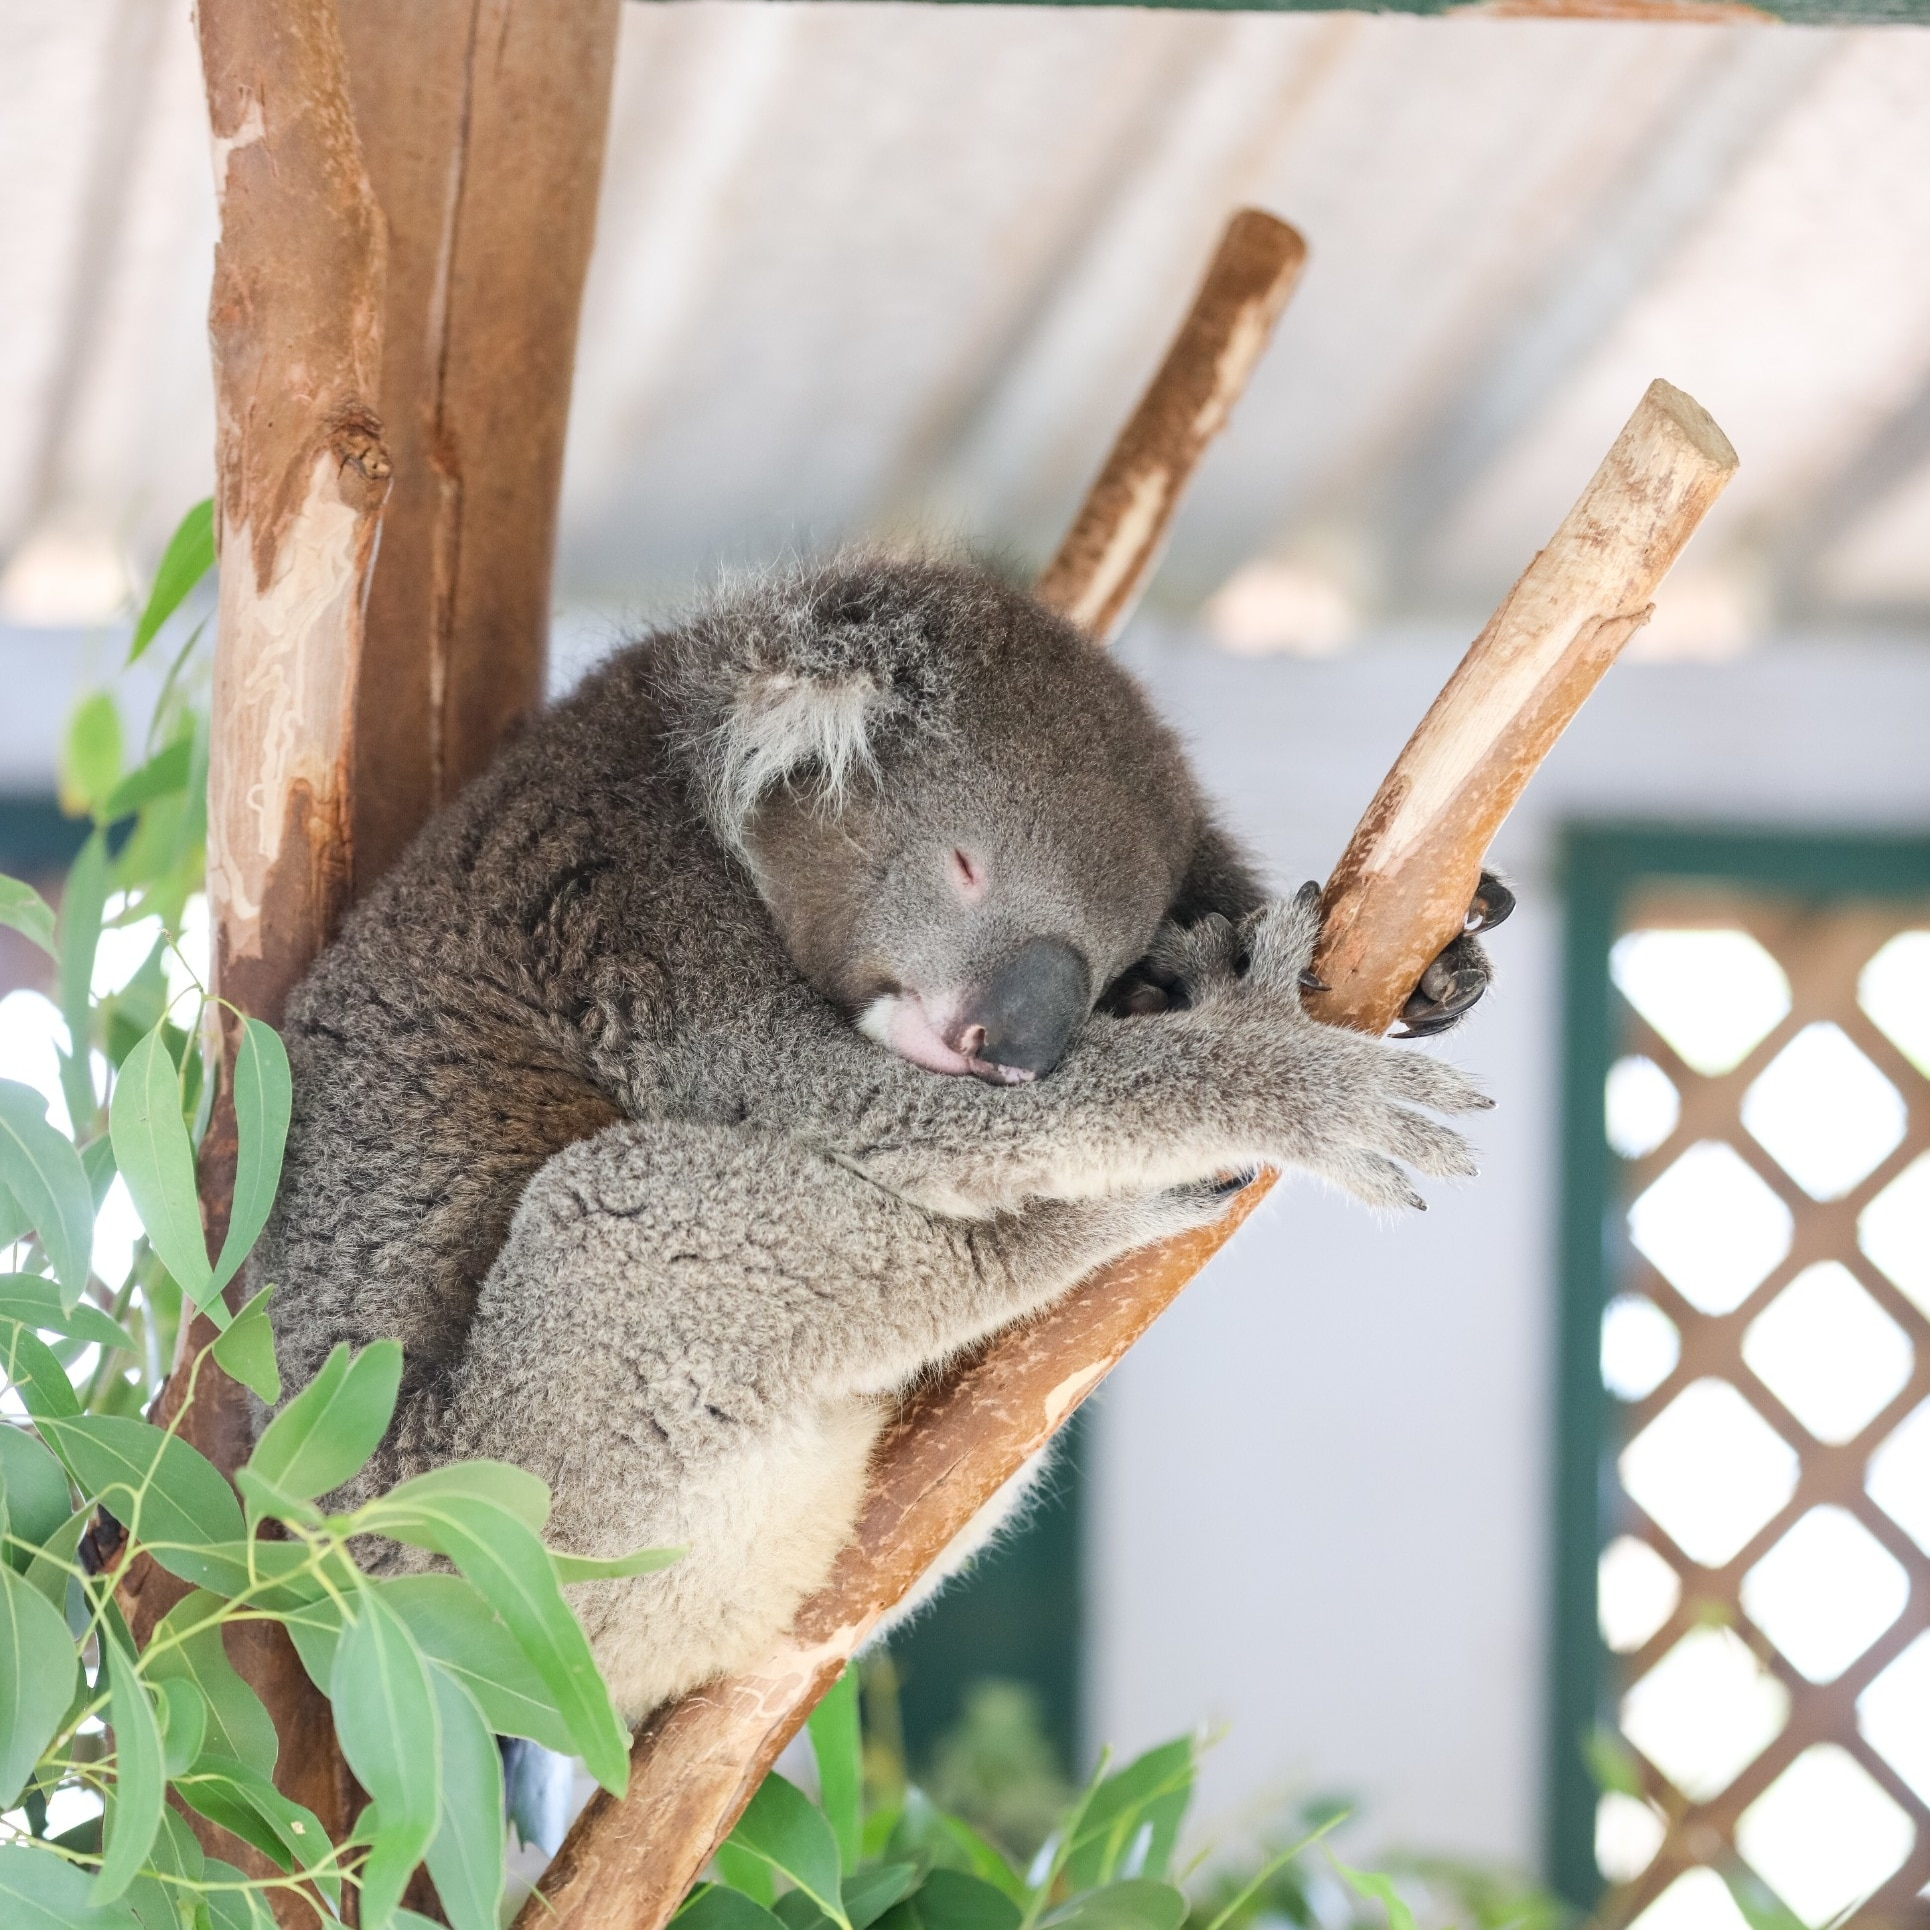 Koala at Featherdale Wildlife Park, Doonside, NSW © Destination NSW